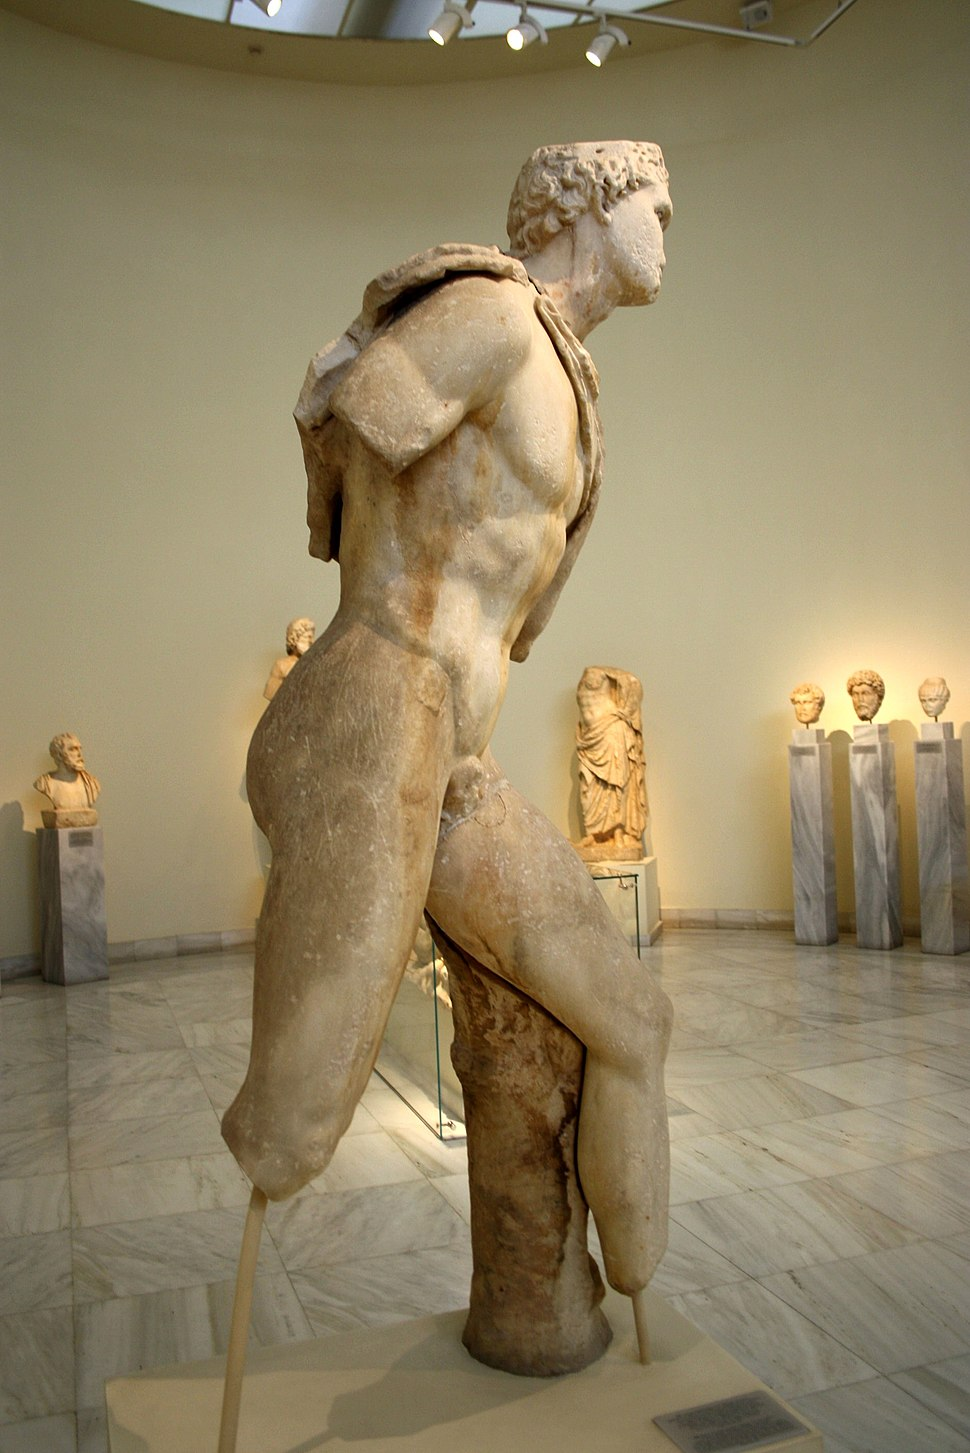 1624 - Archaeological Museum, Athens - Hermes or Perseus - Photo by Giovanni Dall%27Orto, Nov 11 2009